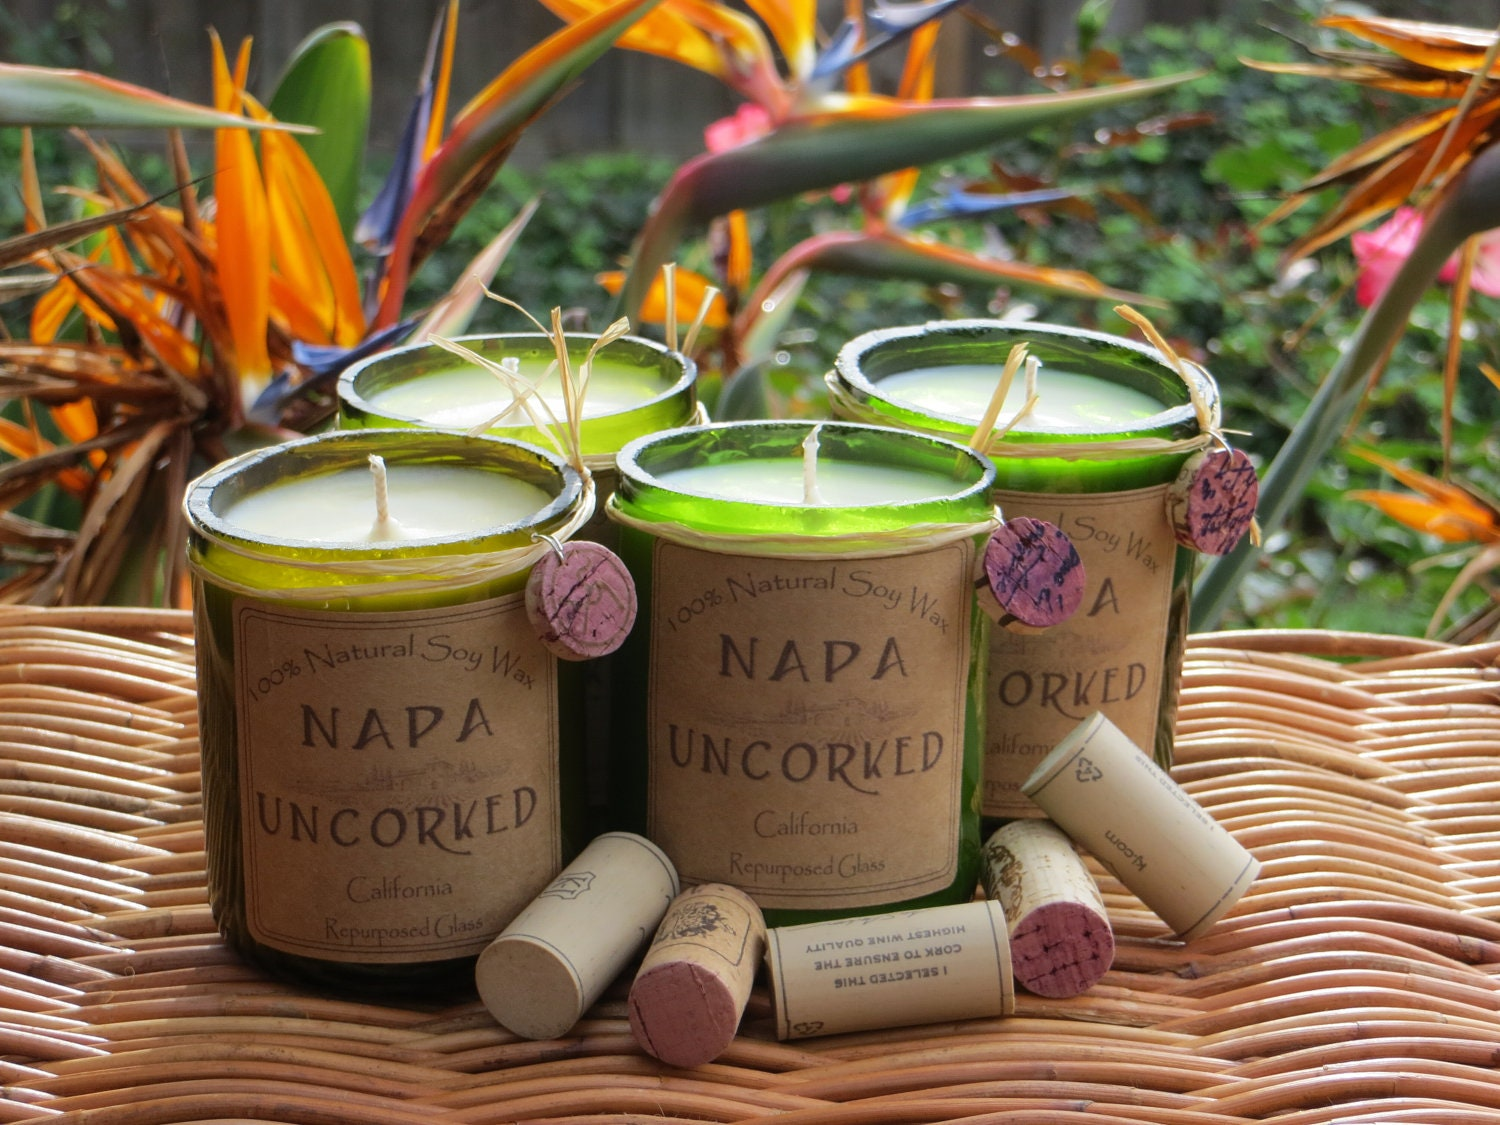 Candles made out of recycled wine bottles by Napauncorked on Etsy